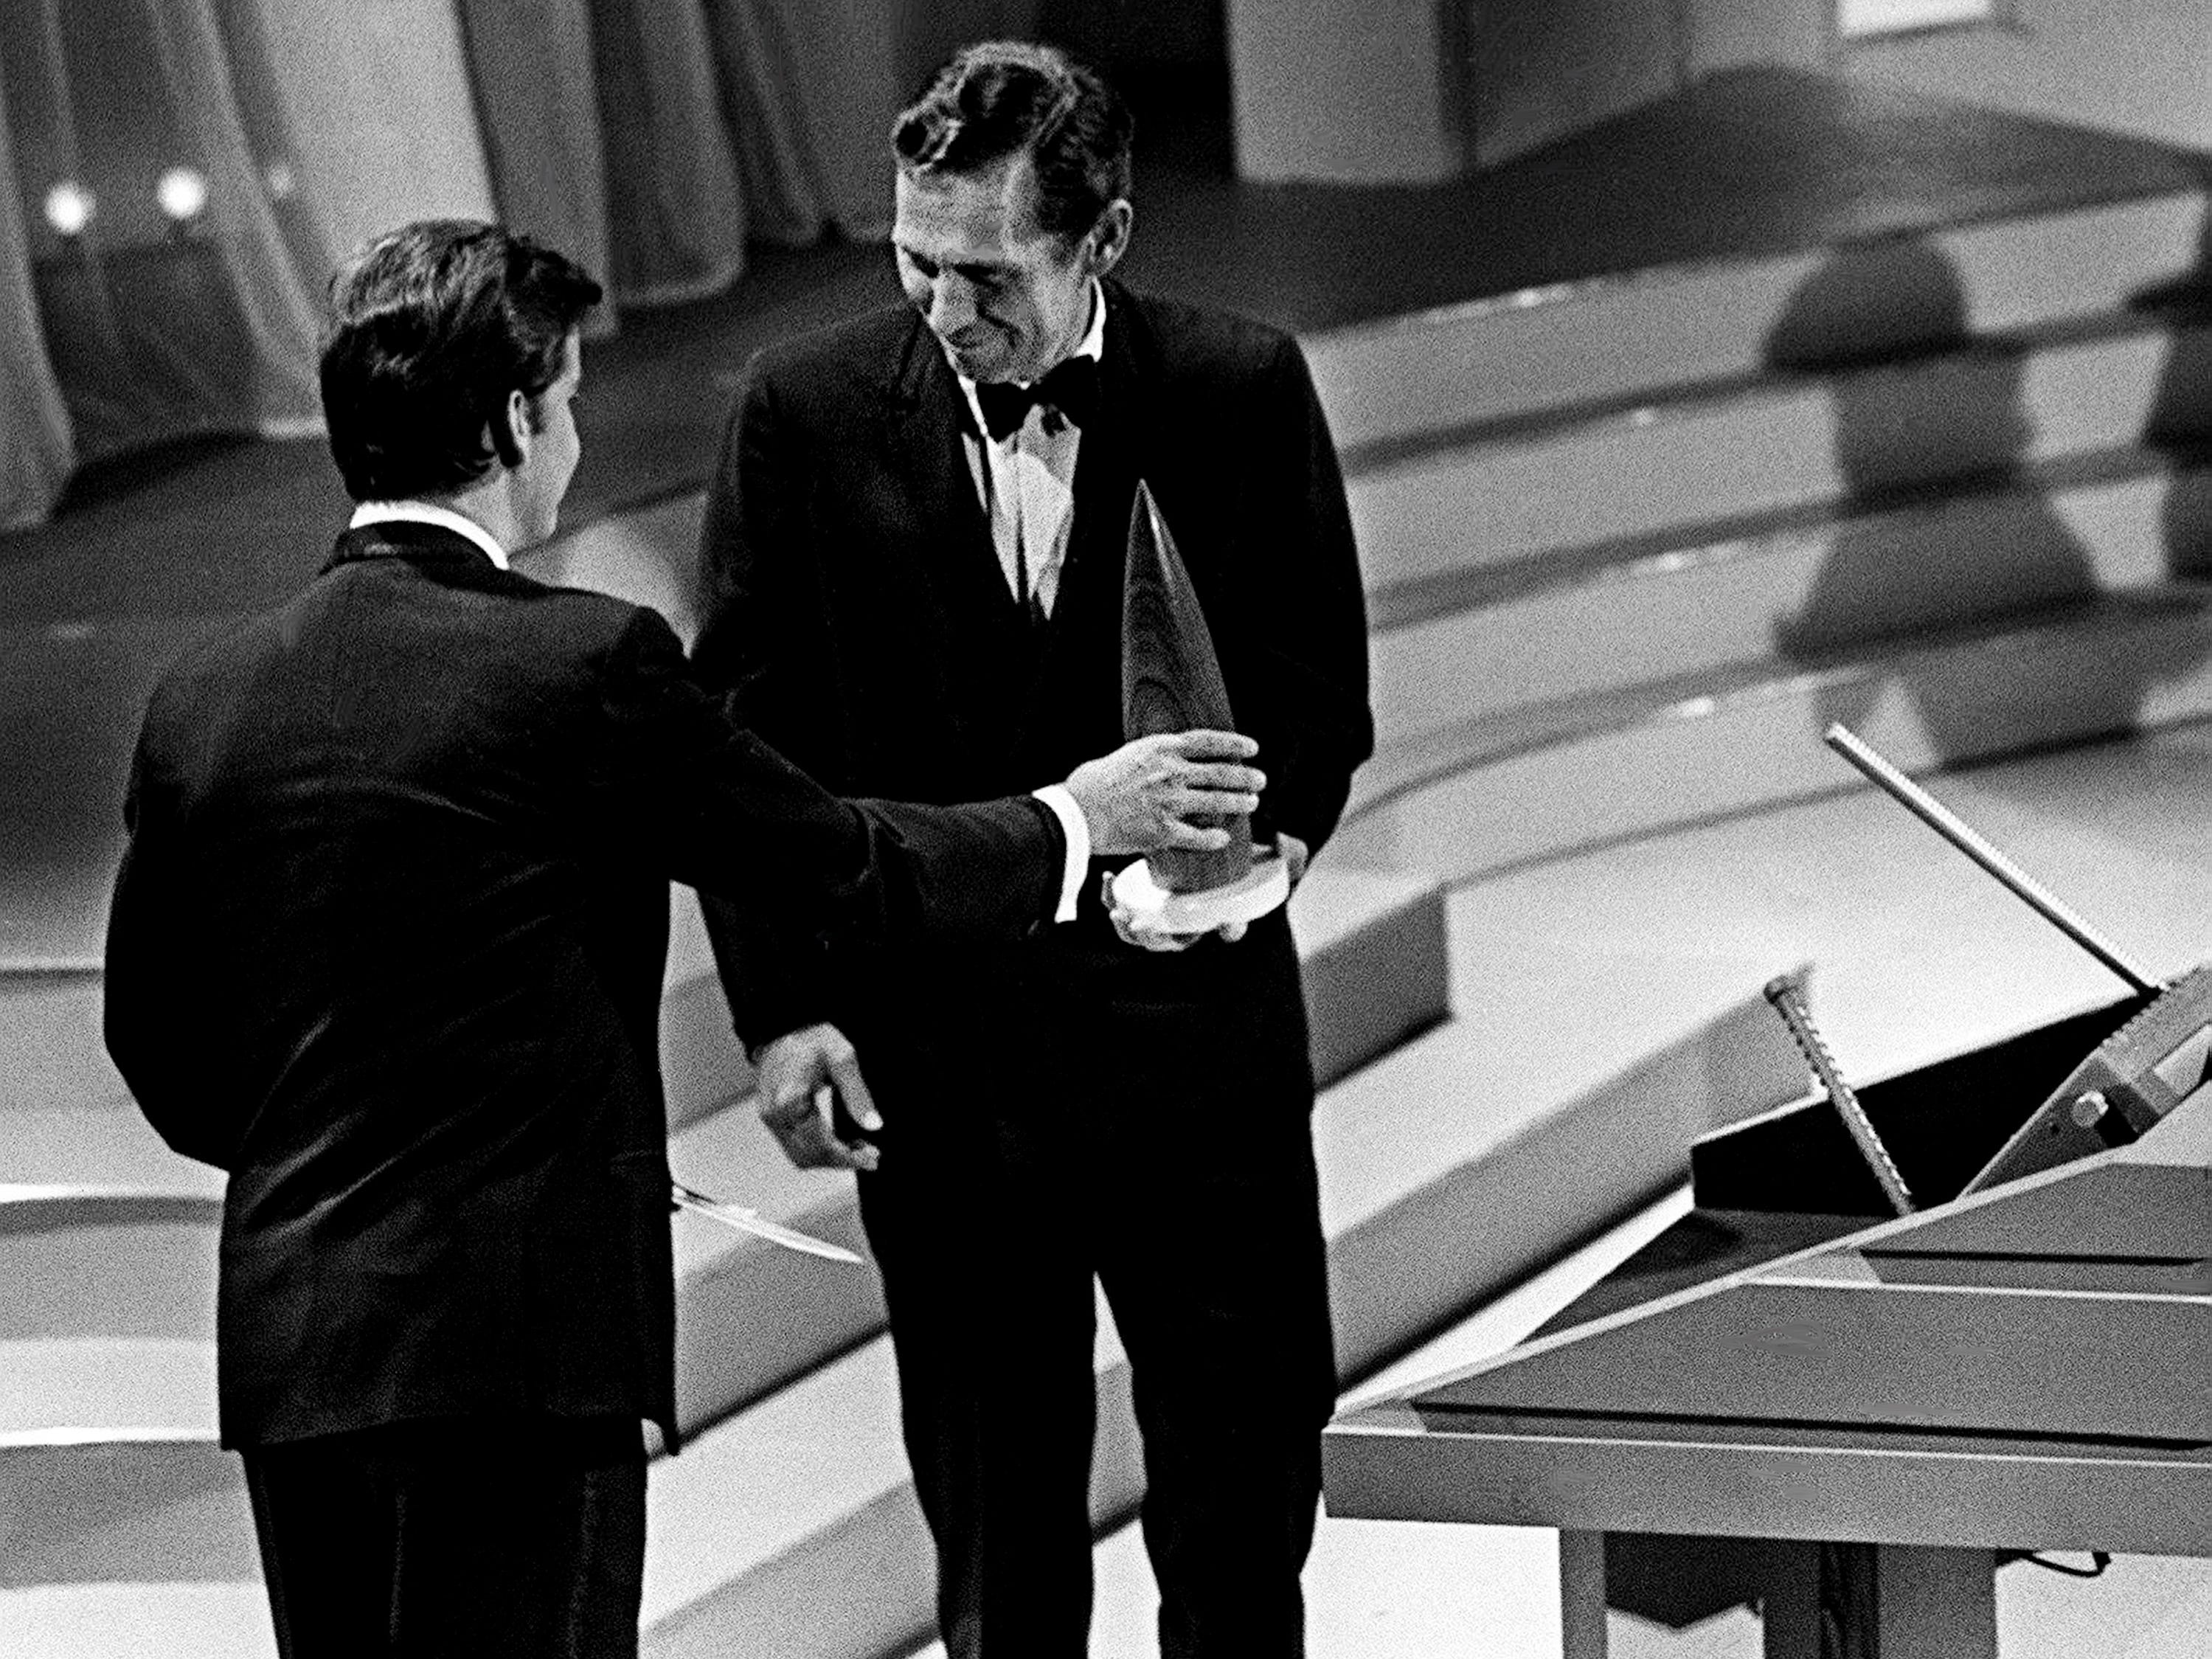 Chet Atkins, right, receives his Instrumentalist of the Year award from presenter Dick Clark during the second annual CMA Awards show at the Ryman Auditorium on Oct. 18, 1968.